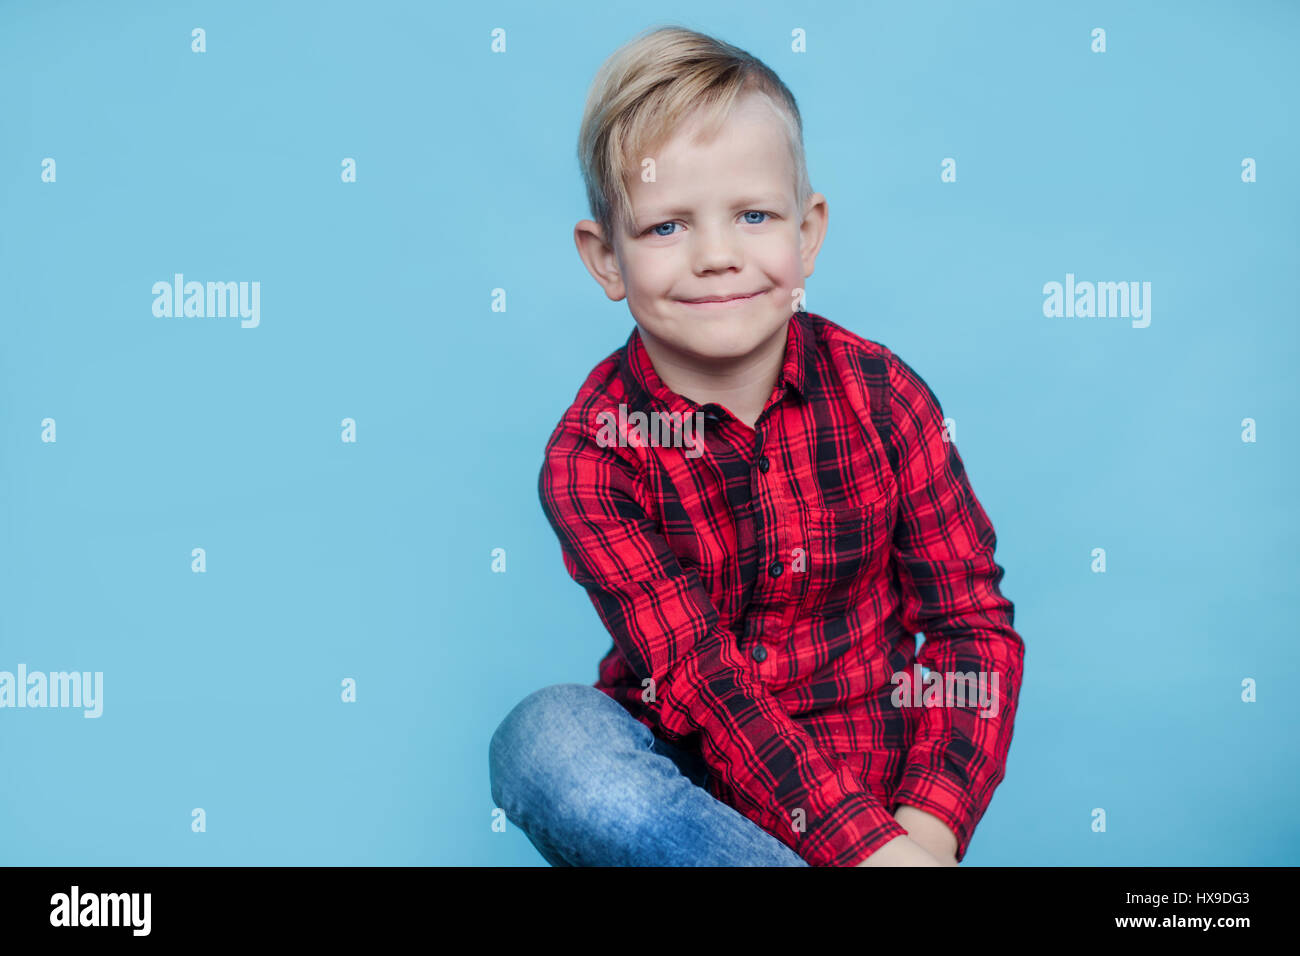 27e3646a6 Handsome little boy with red shirt. Fashion. Studio portrait over blue  background - Stock